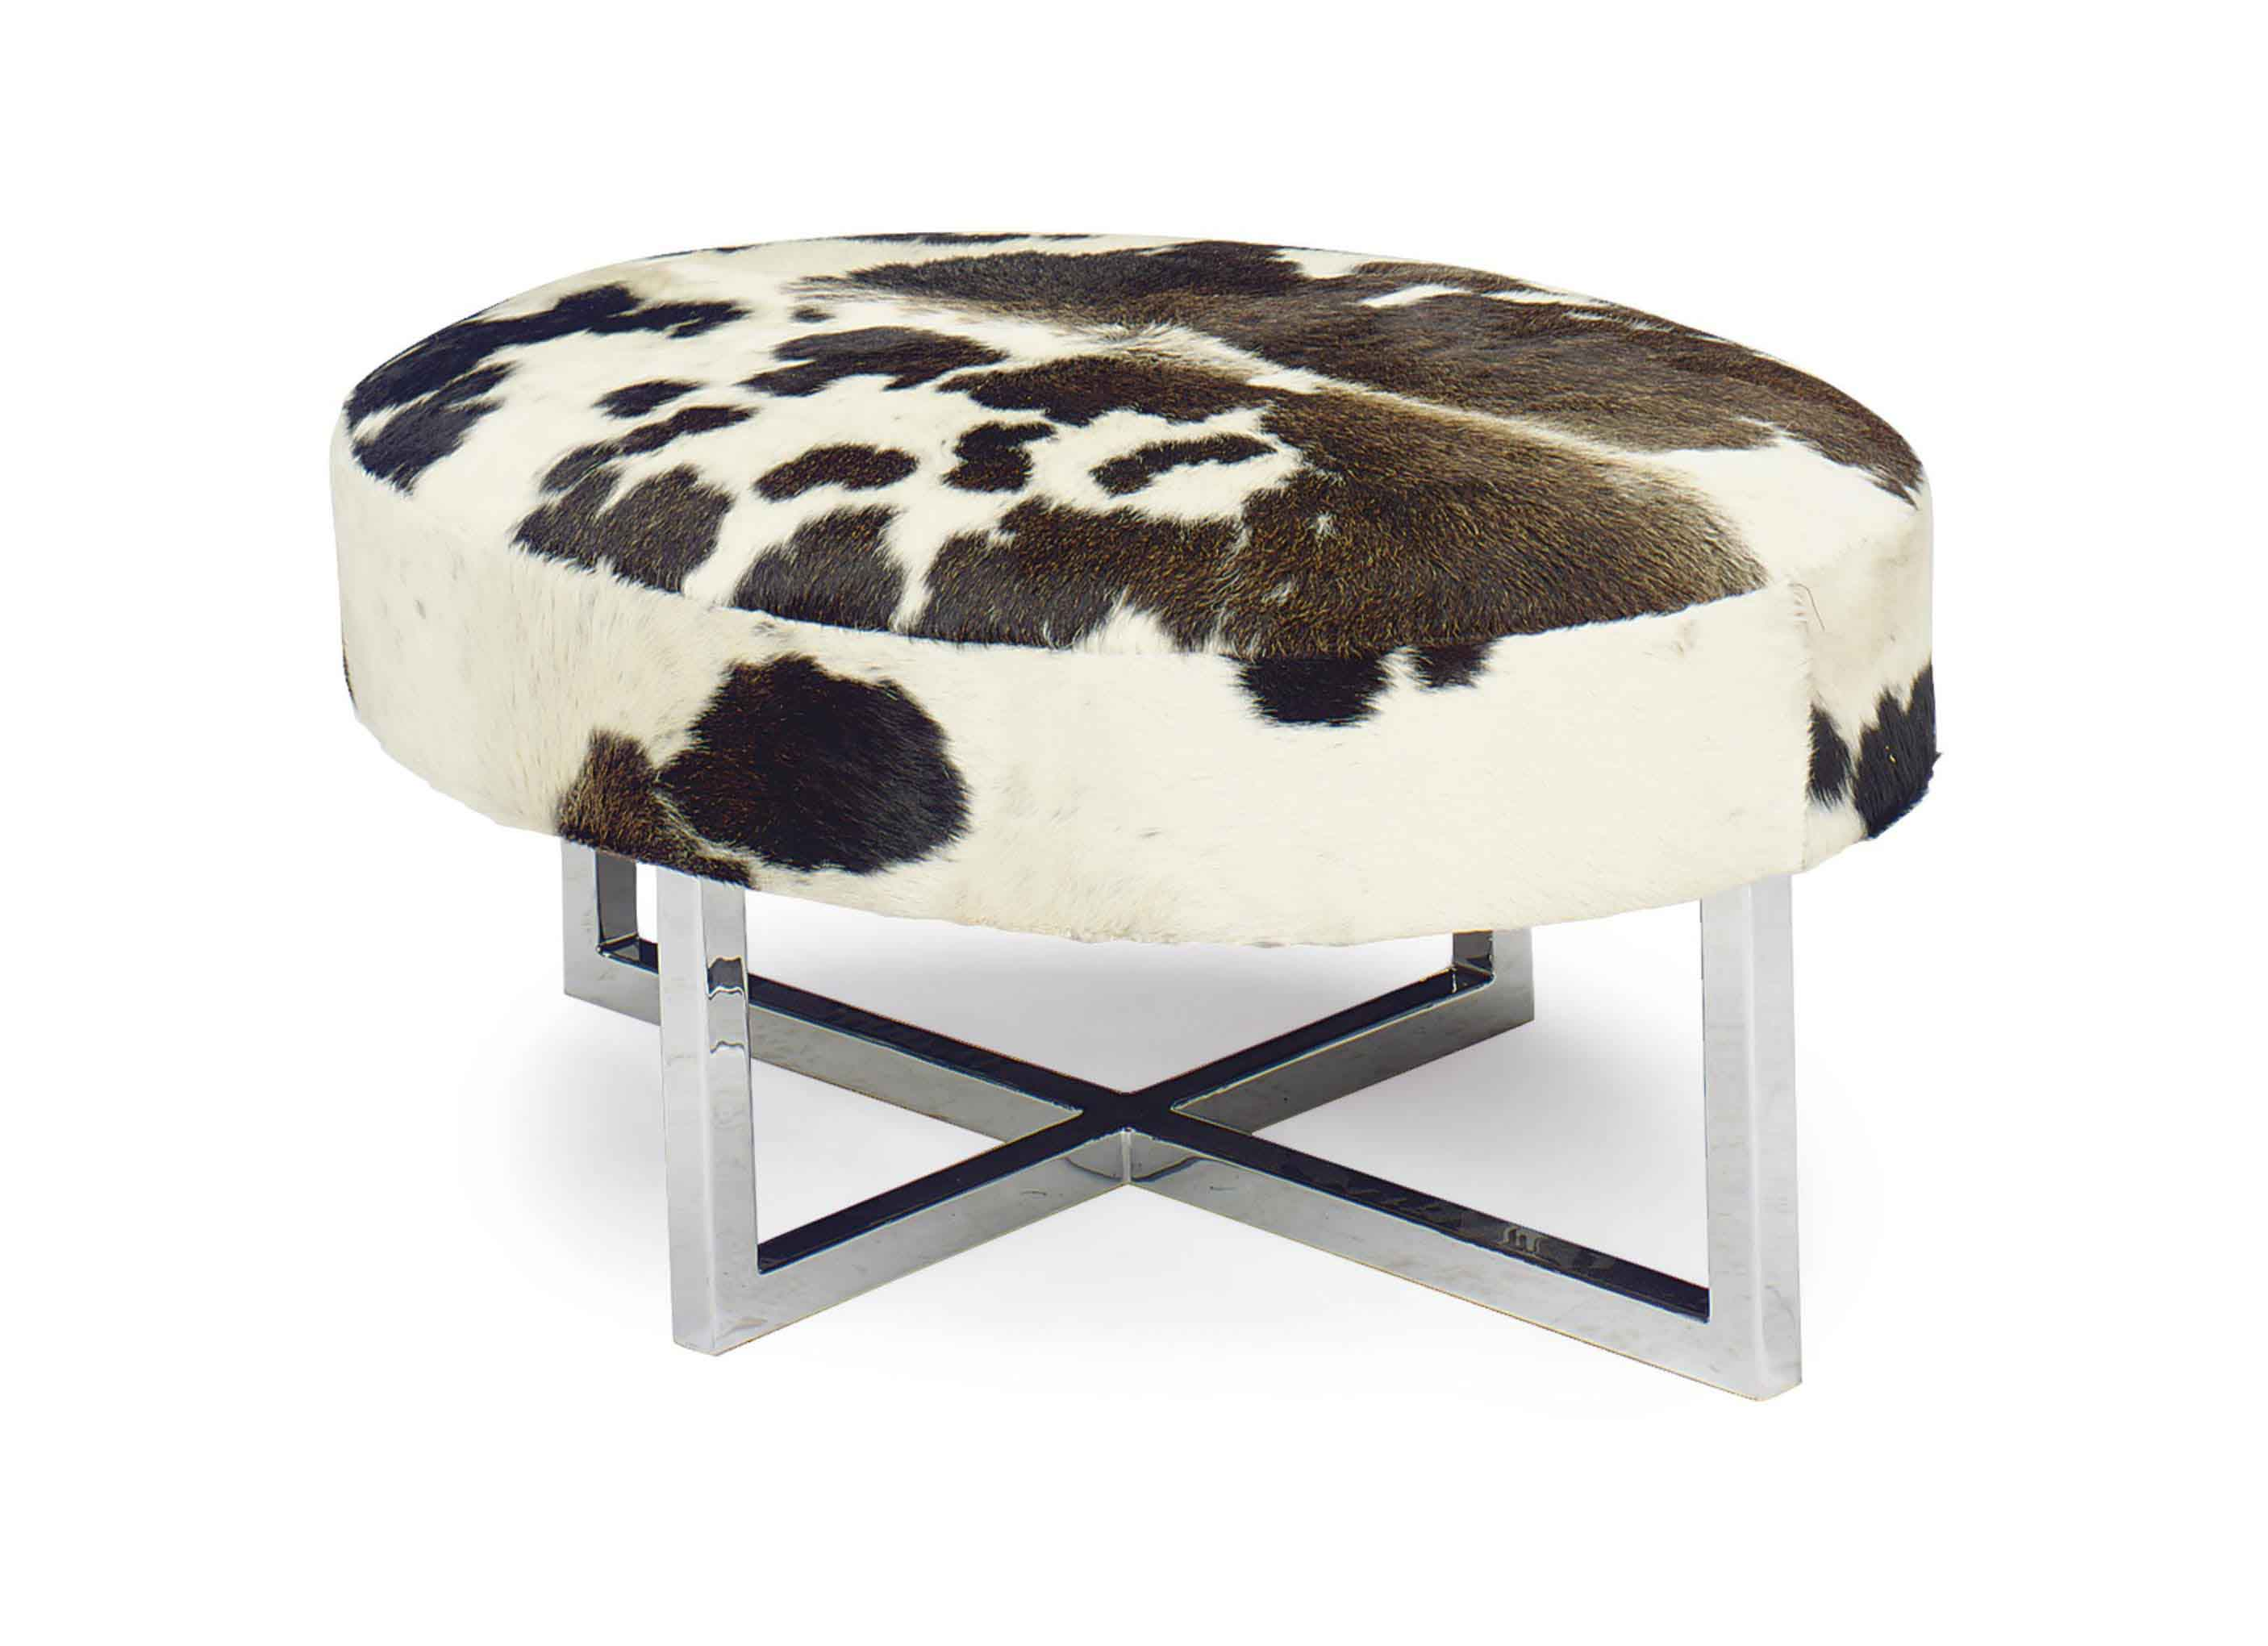 A CHROMED METAL AND PONYSKIN UPHOLSTERED OVAL BENCH,